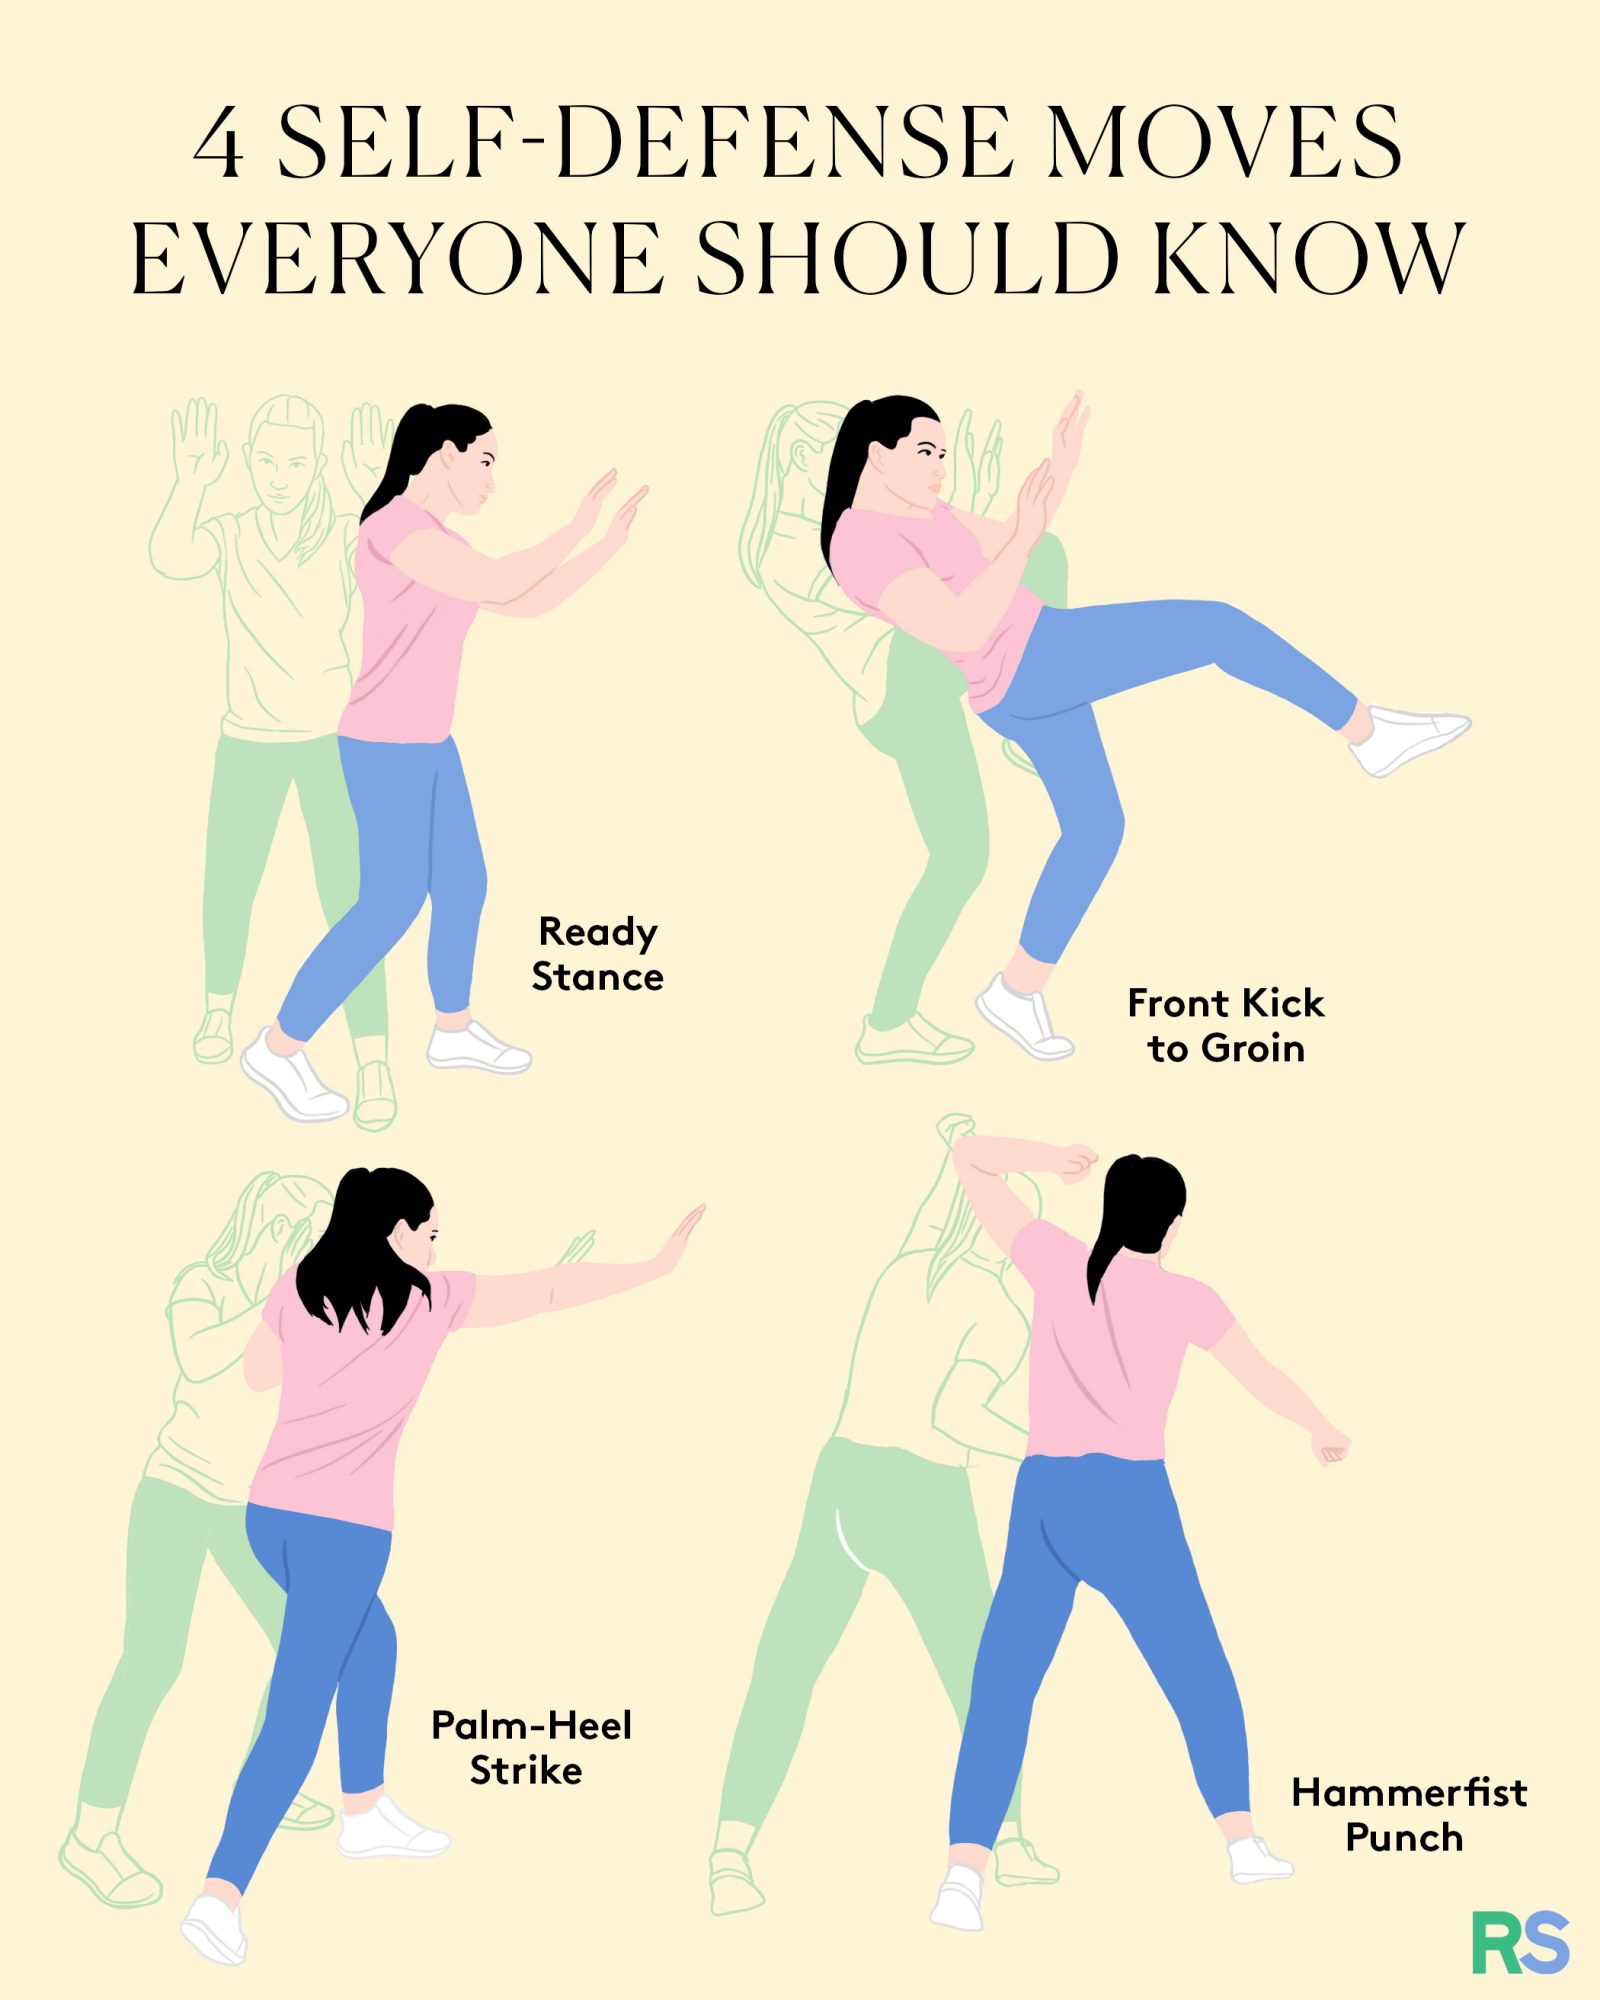 4 Basic Self-Defense Moves: ready stance, palm-heel strike, front kick to groin, hammerfist punch